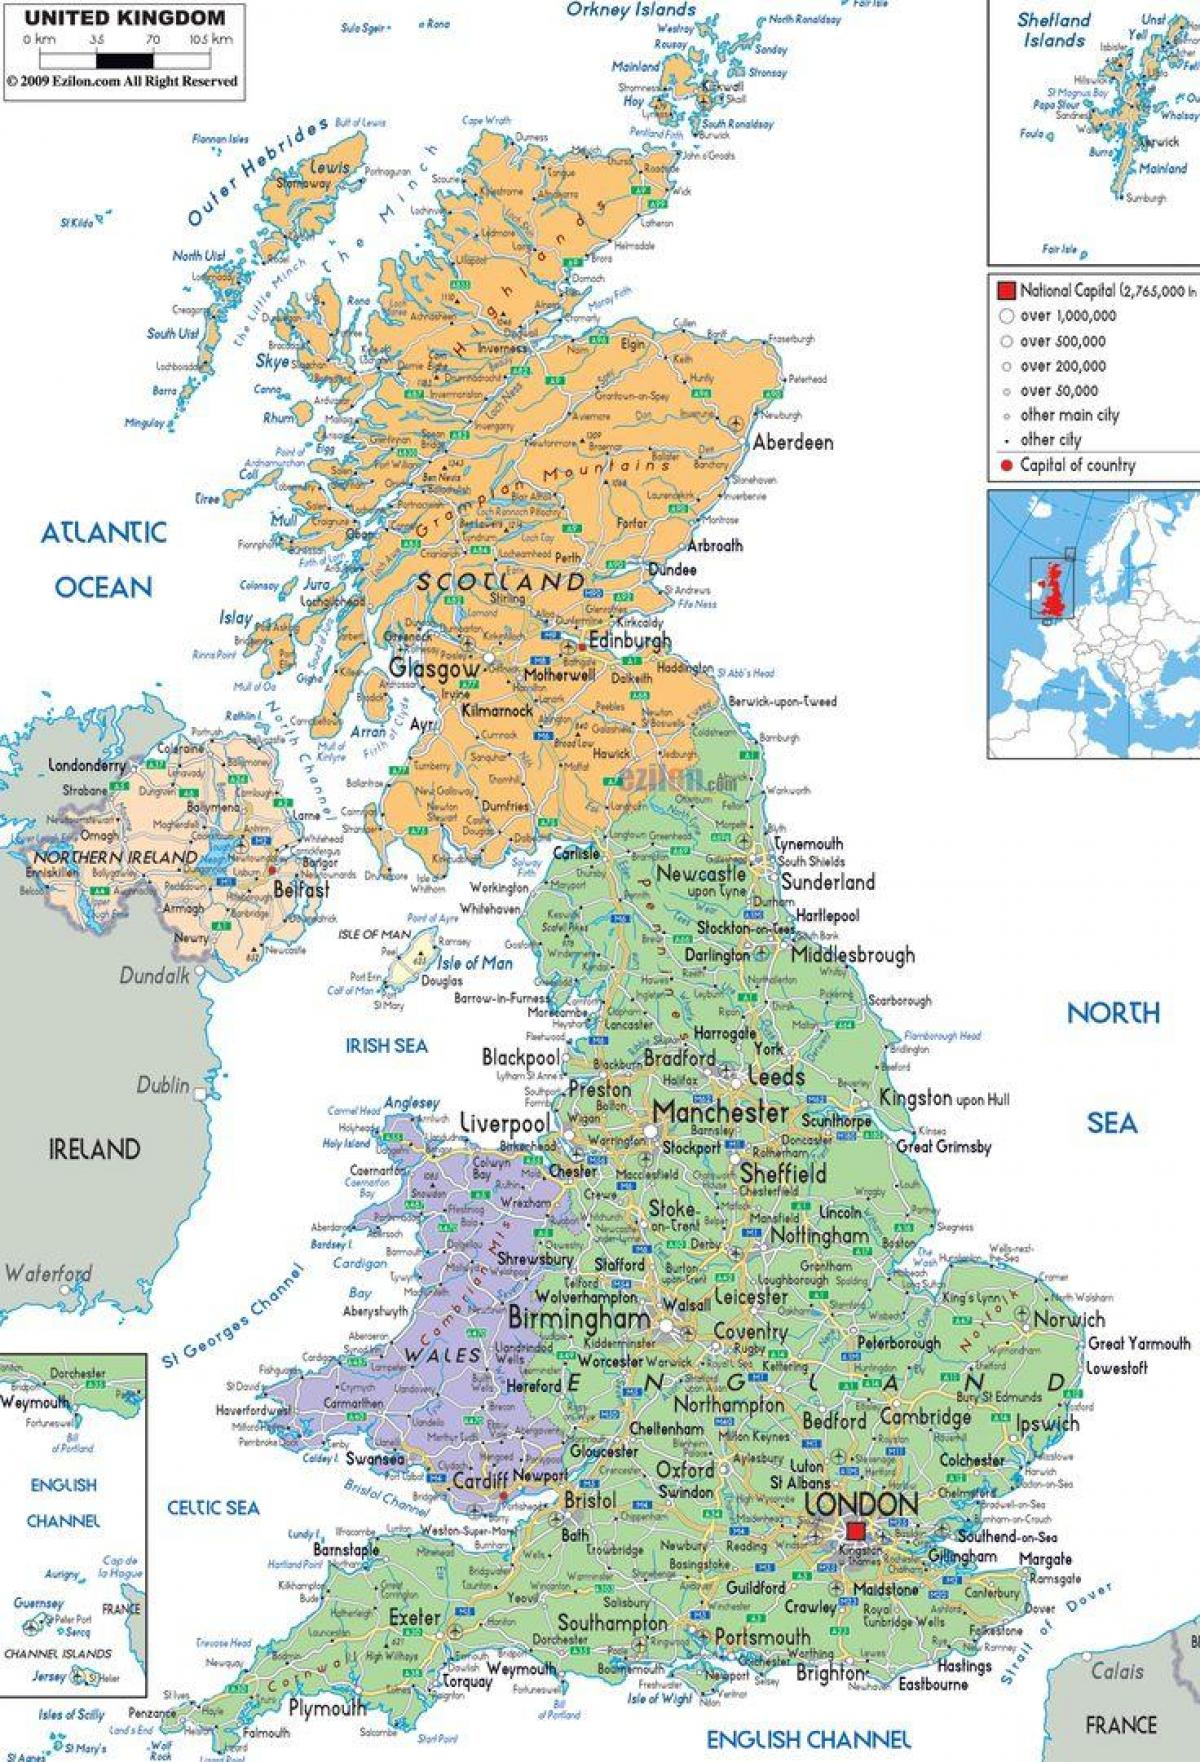 where is Britain on the map